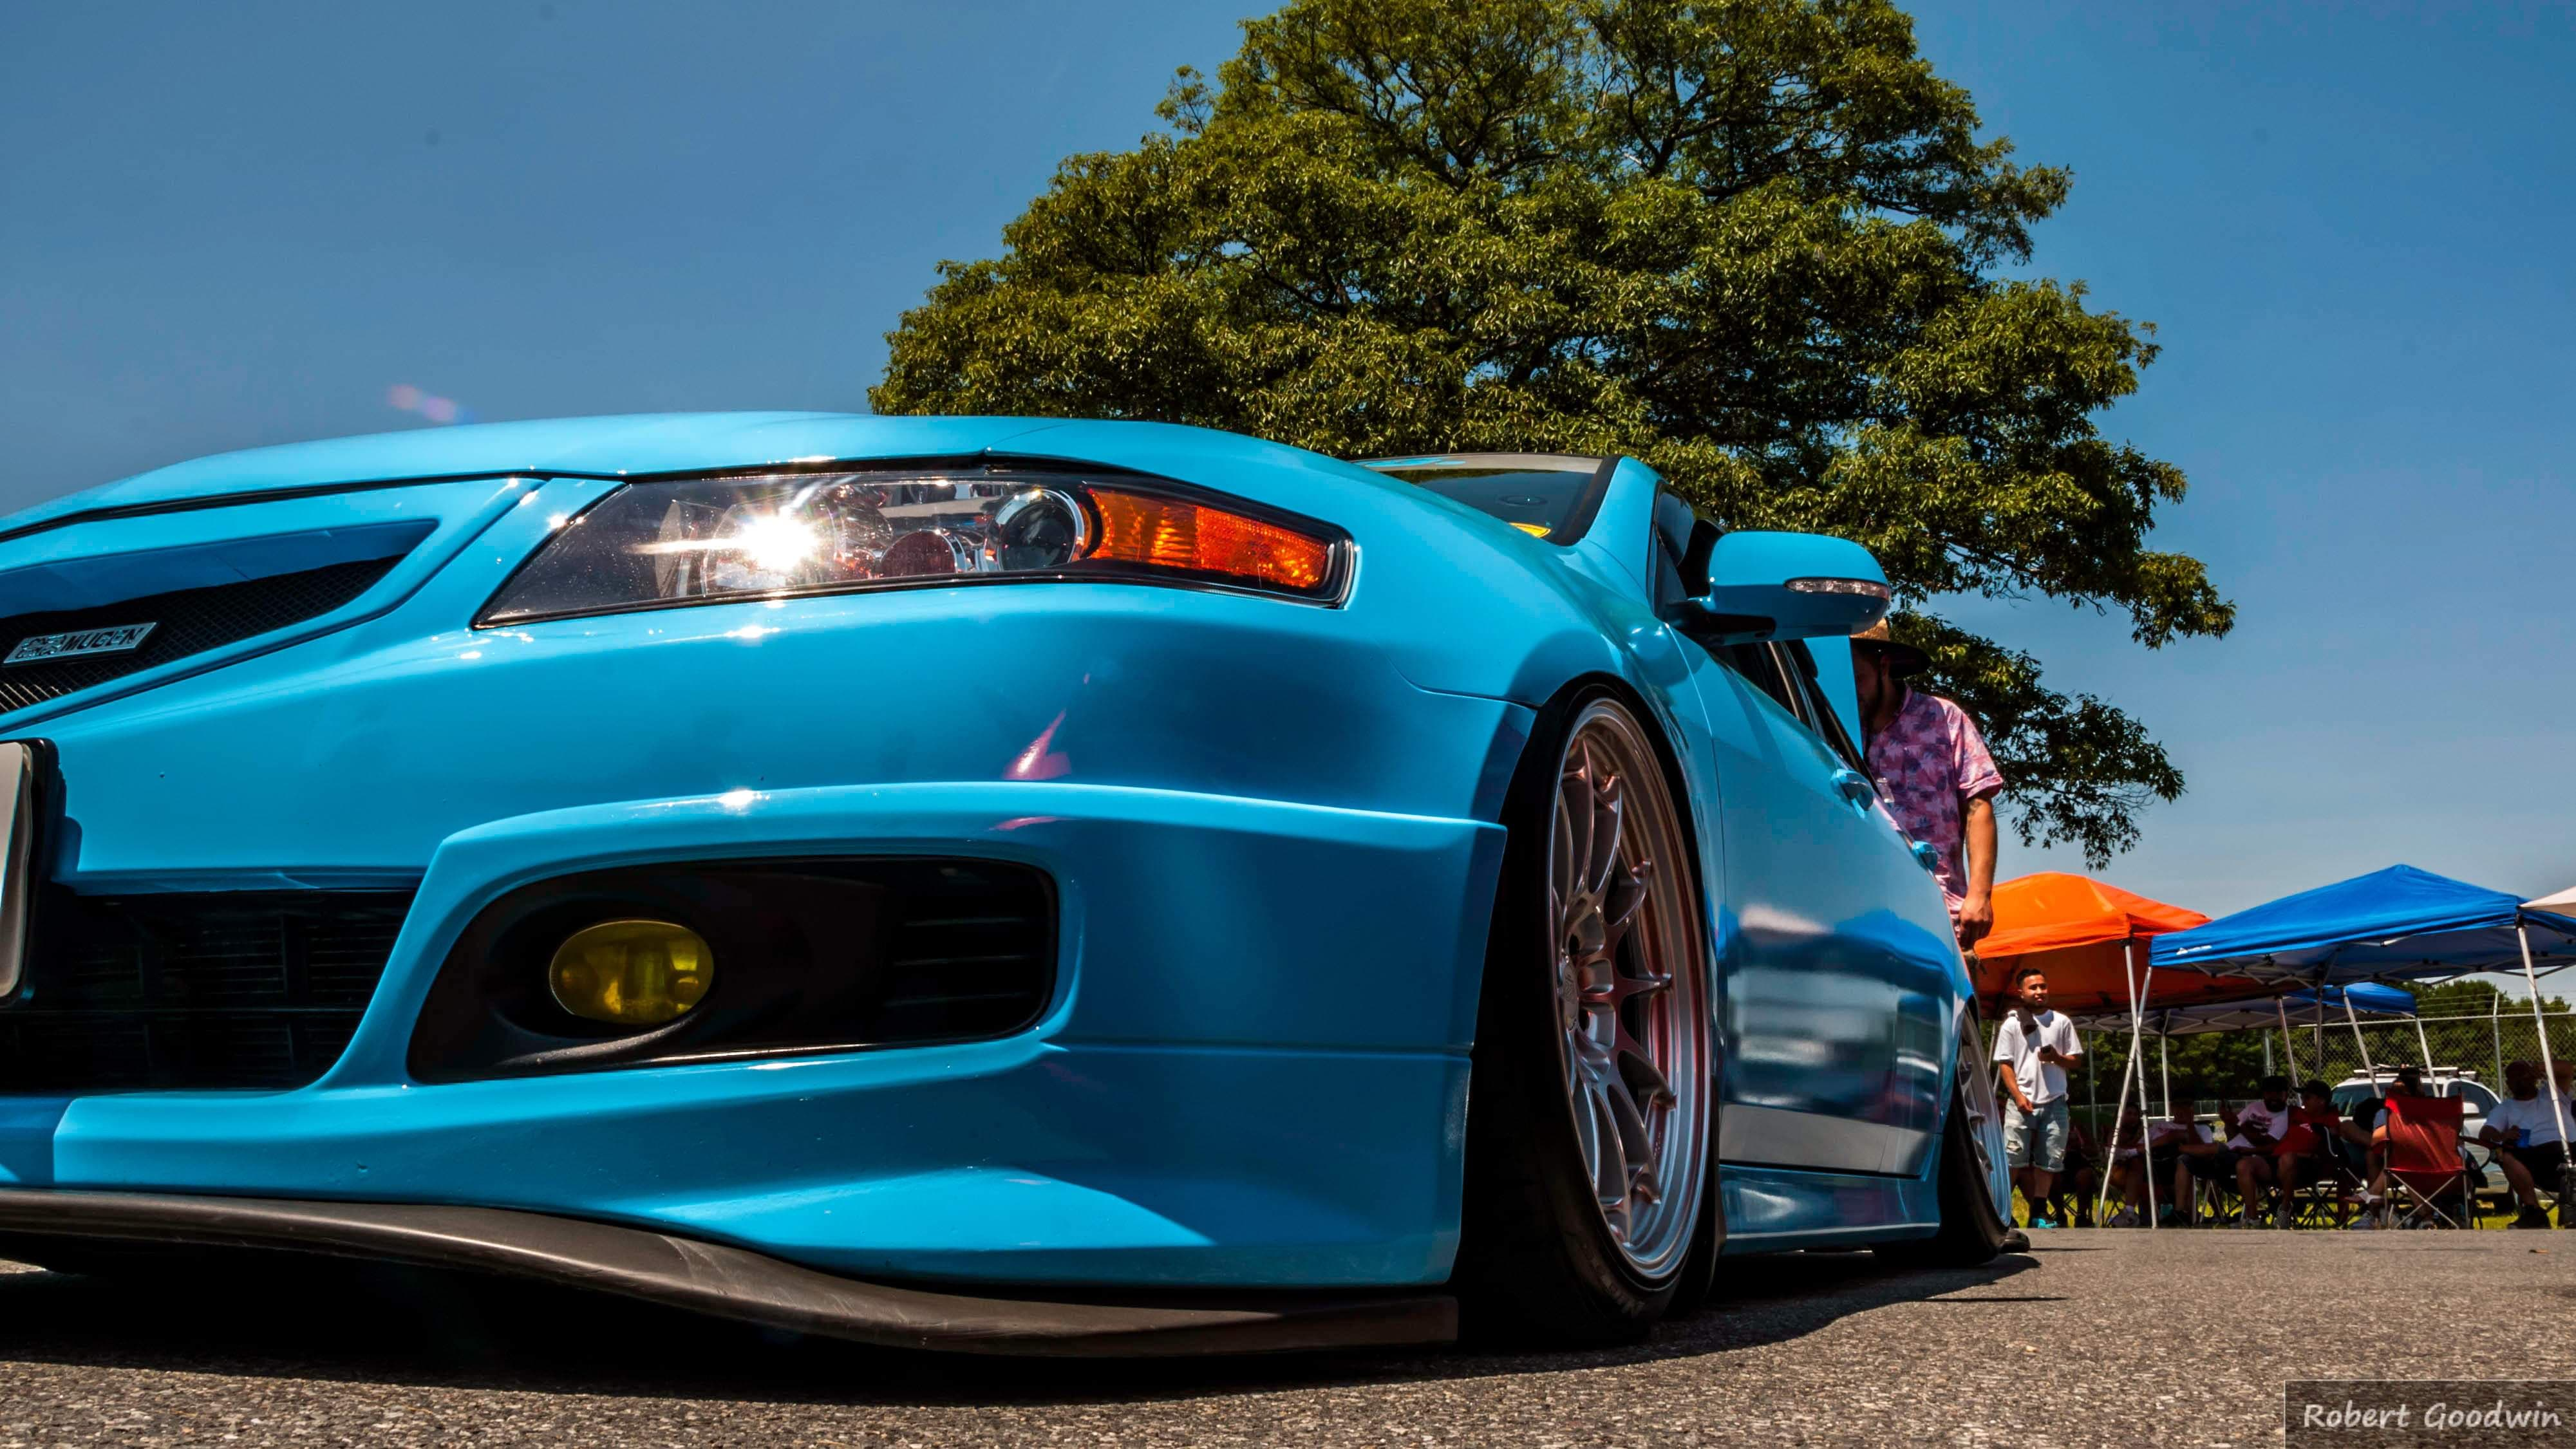 09 Patrick Despin 2007 Acura TSX PASMAG TBGLIVE